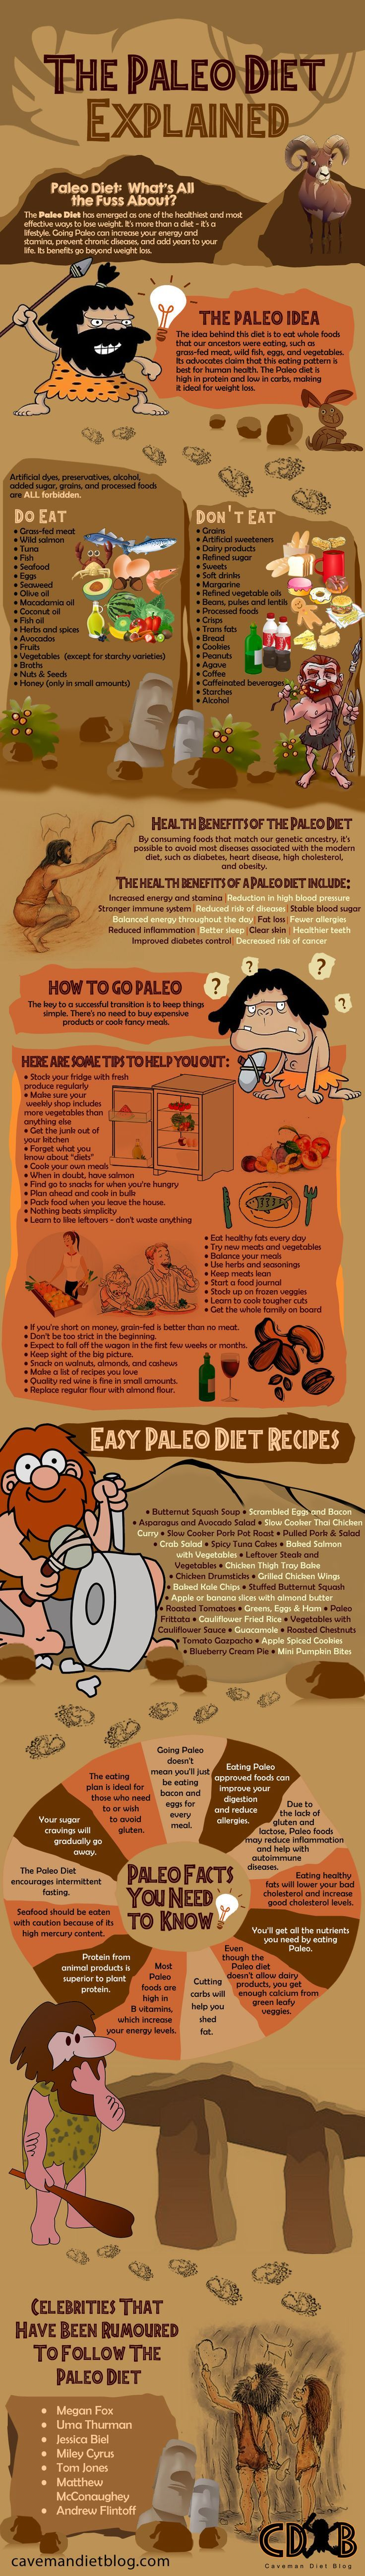 The Paleo Diet Explained - Fantastic infographic full of information about the Paleo diet - perfect for beginners #paleodietforbeginners #paleodiet #paleodietexplained #paleotips